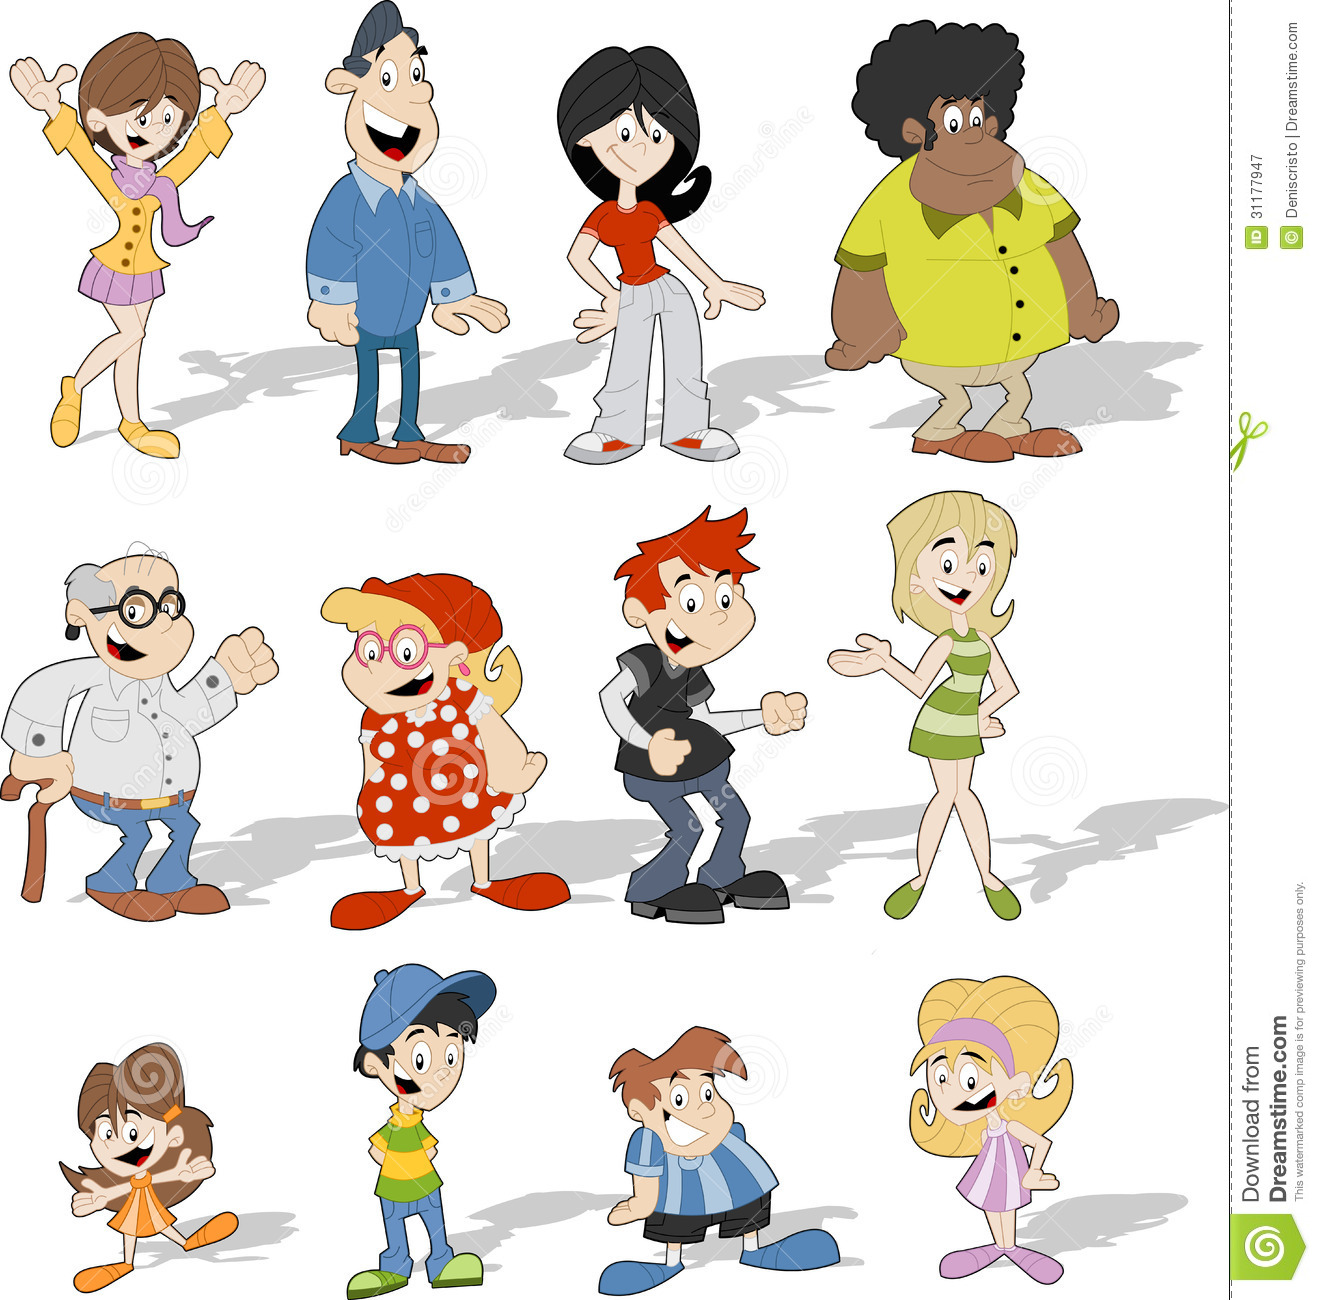 Group Of 6 Cartoon Characters : Cartoon people royalty free stock photography image